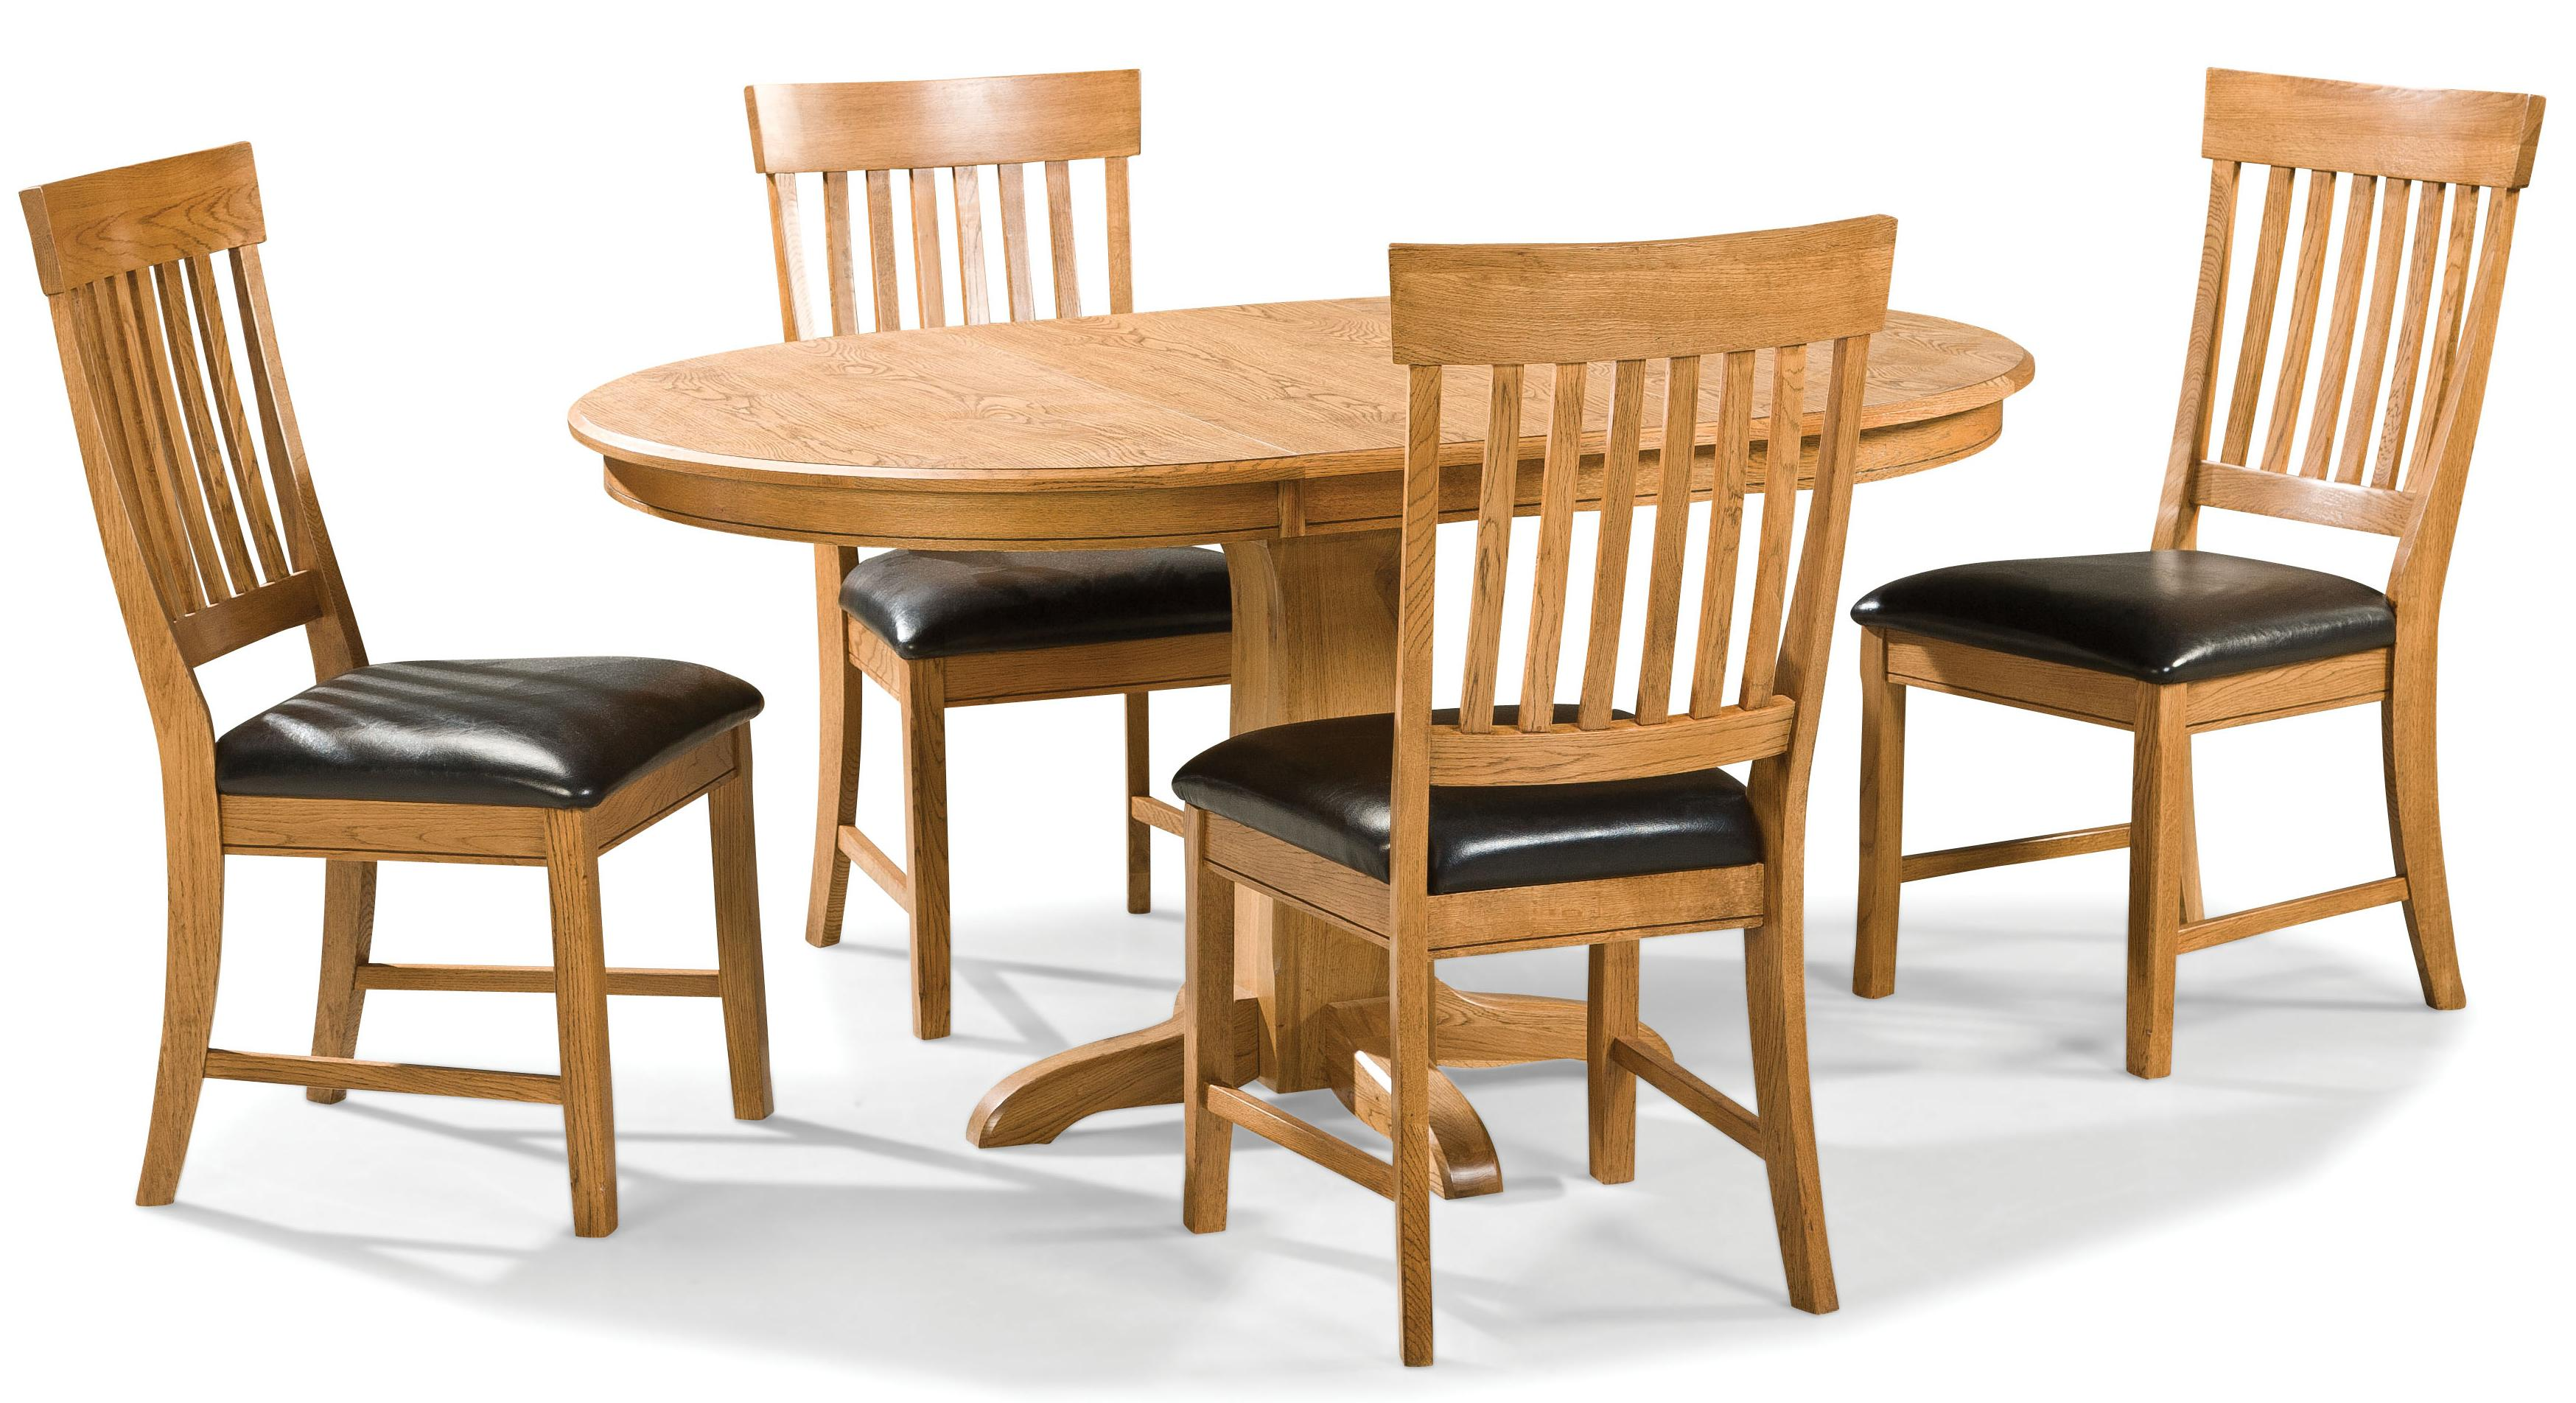 Intercon Family Dining 5 Piece Dining Set - Item Number: FD-TA-L4260-CNT-BSE+TOP+4xCH-180C